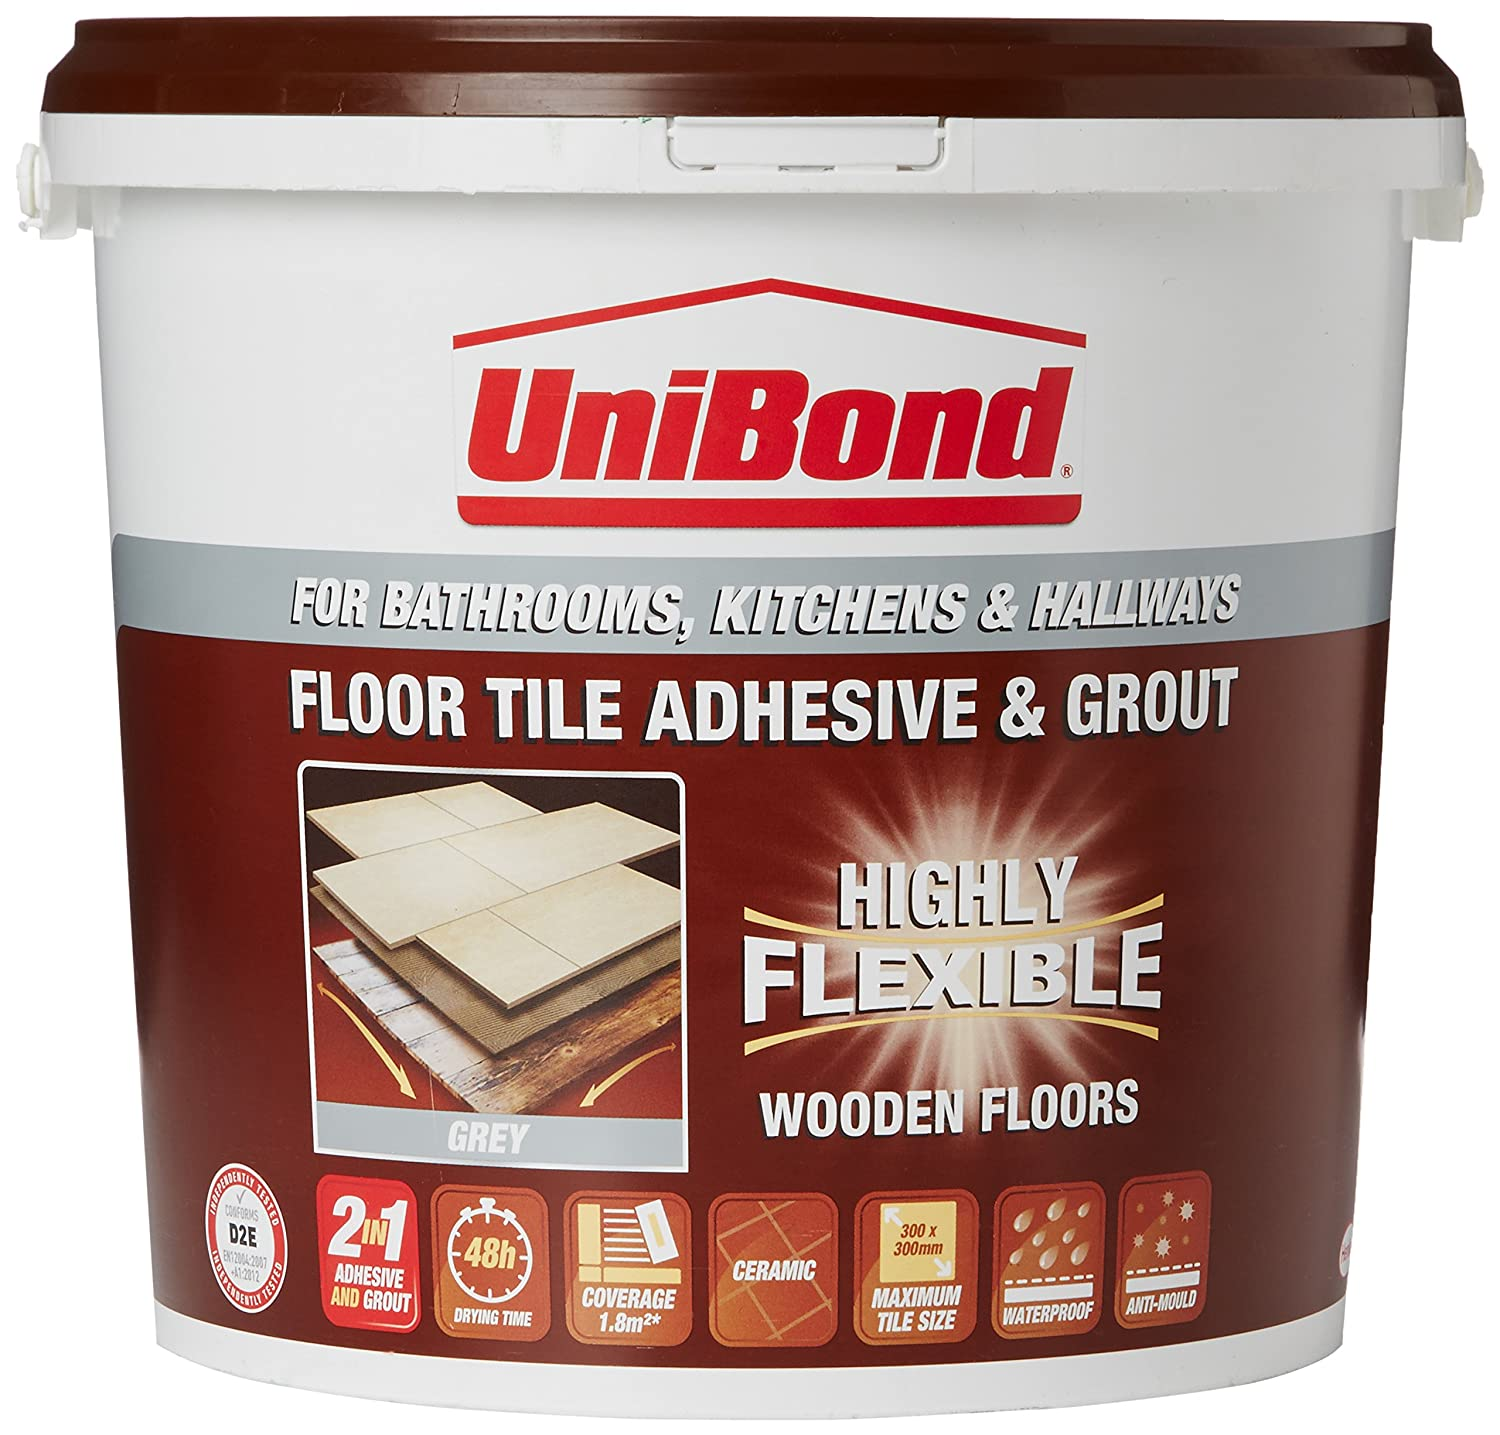 Unibond tiling on wooden floors anti mould flexible waterproof unibond tiling on wooden floors anti mould flexible waterproof adhesive grout large bucket grey discontinued by manufacturer amazon diy tools dailygadgetfo Gallery